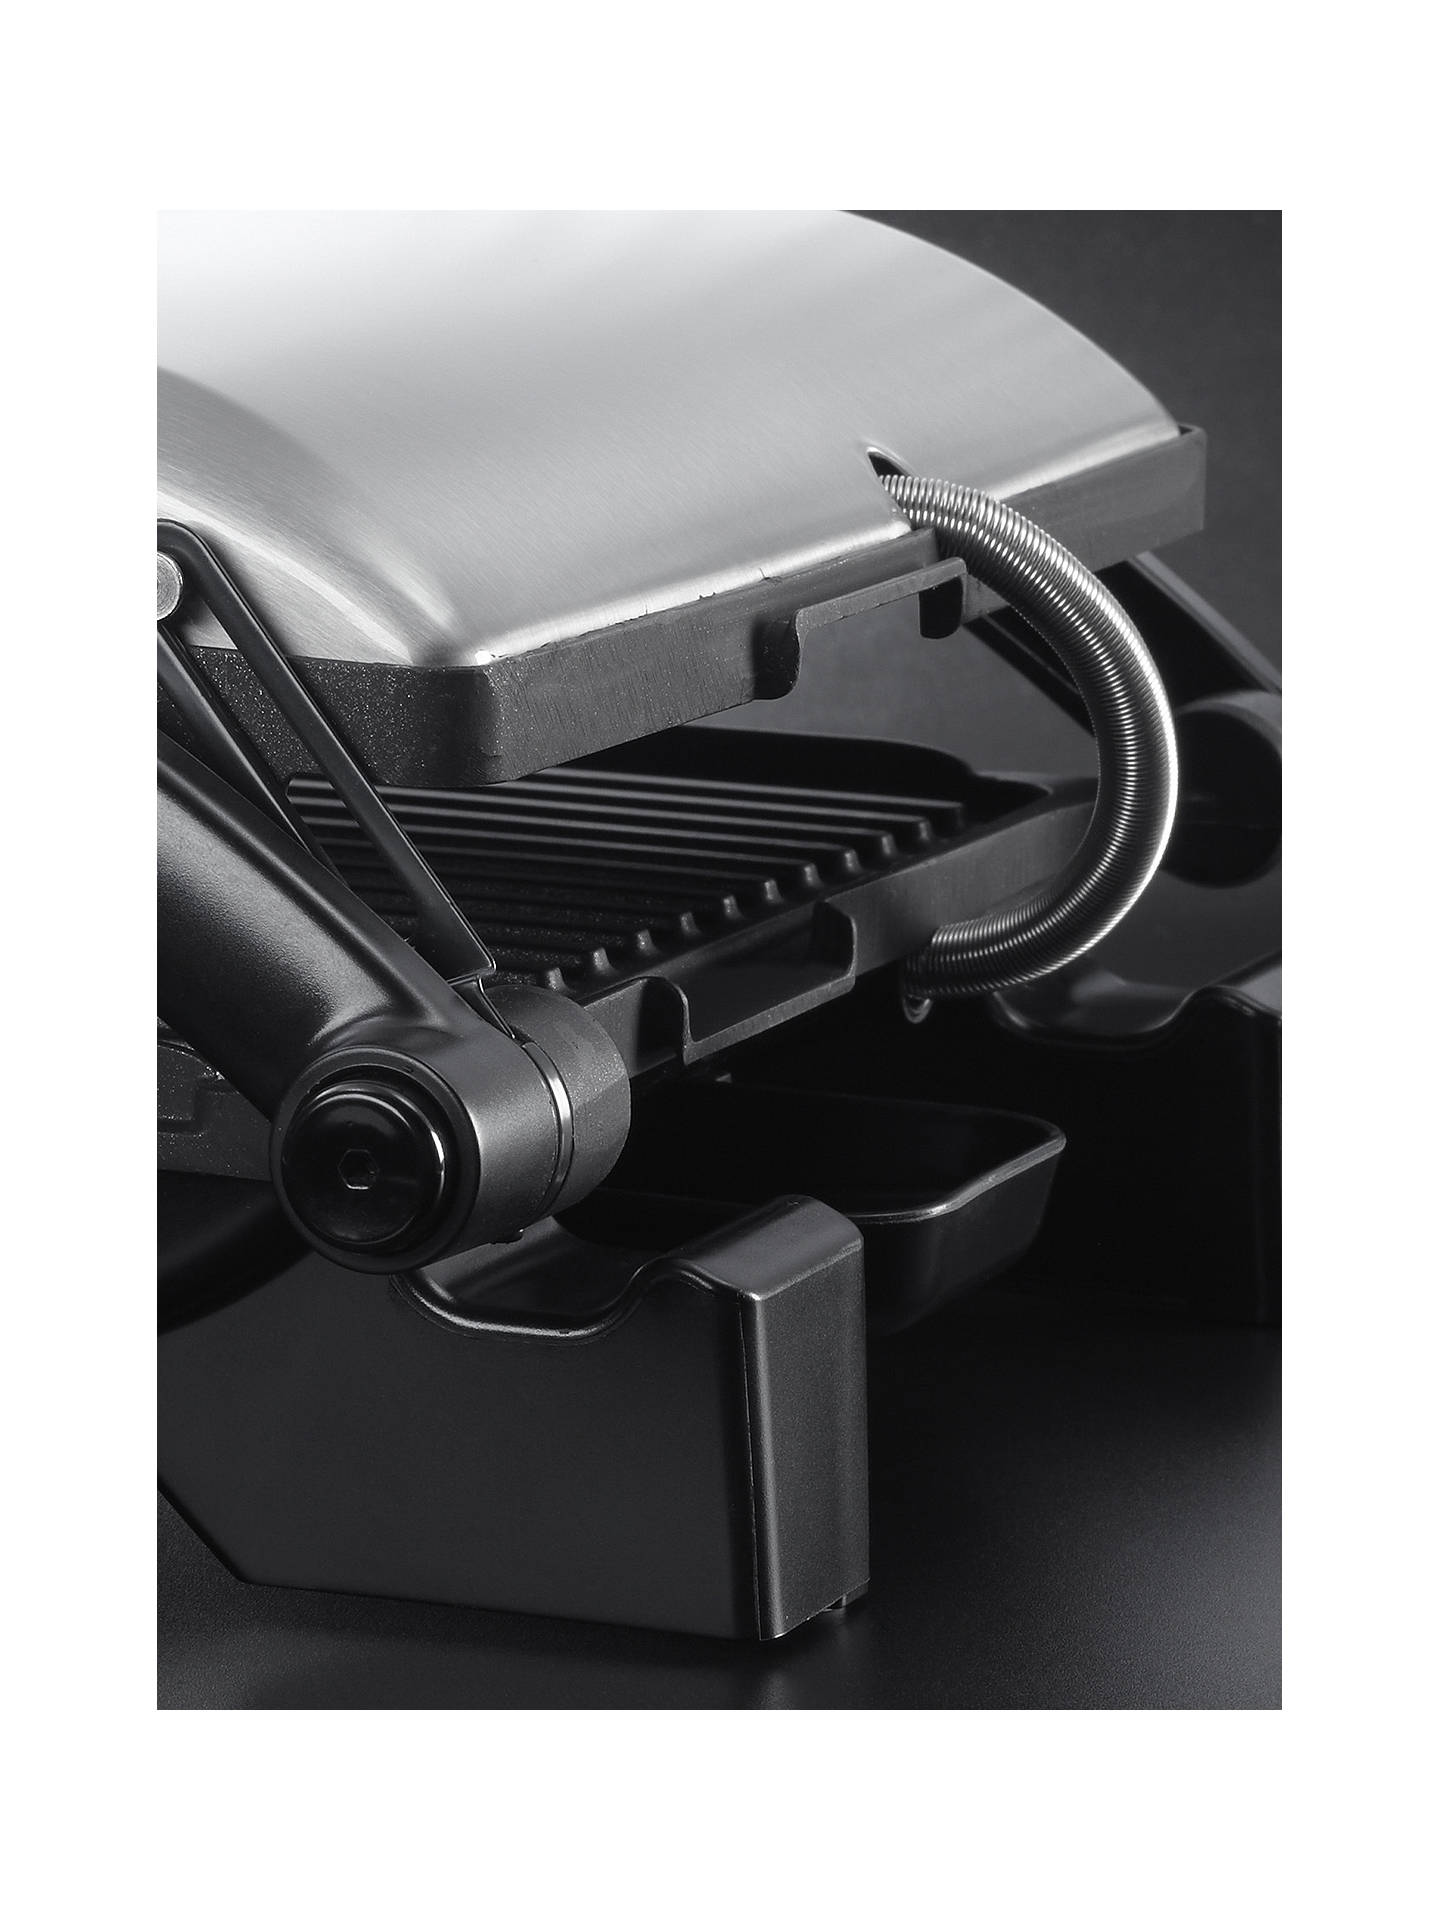 BuyRussell Hobbs Cook at Home 3-in-1 Panini Maker, Grill and Griddle Online at johnlewis.com